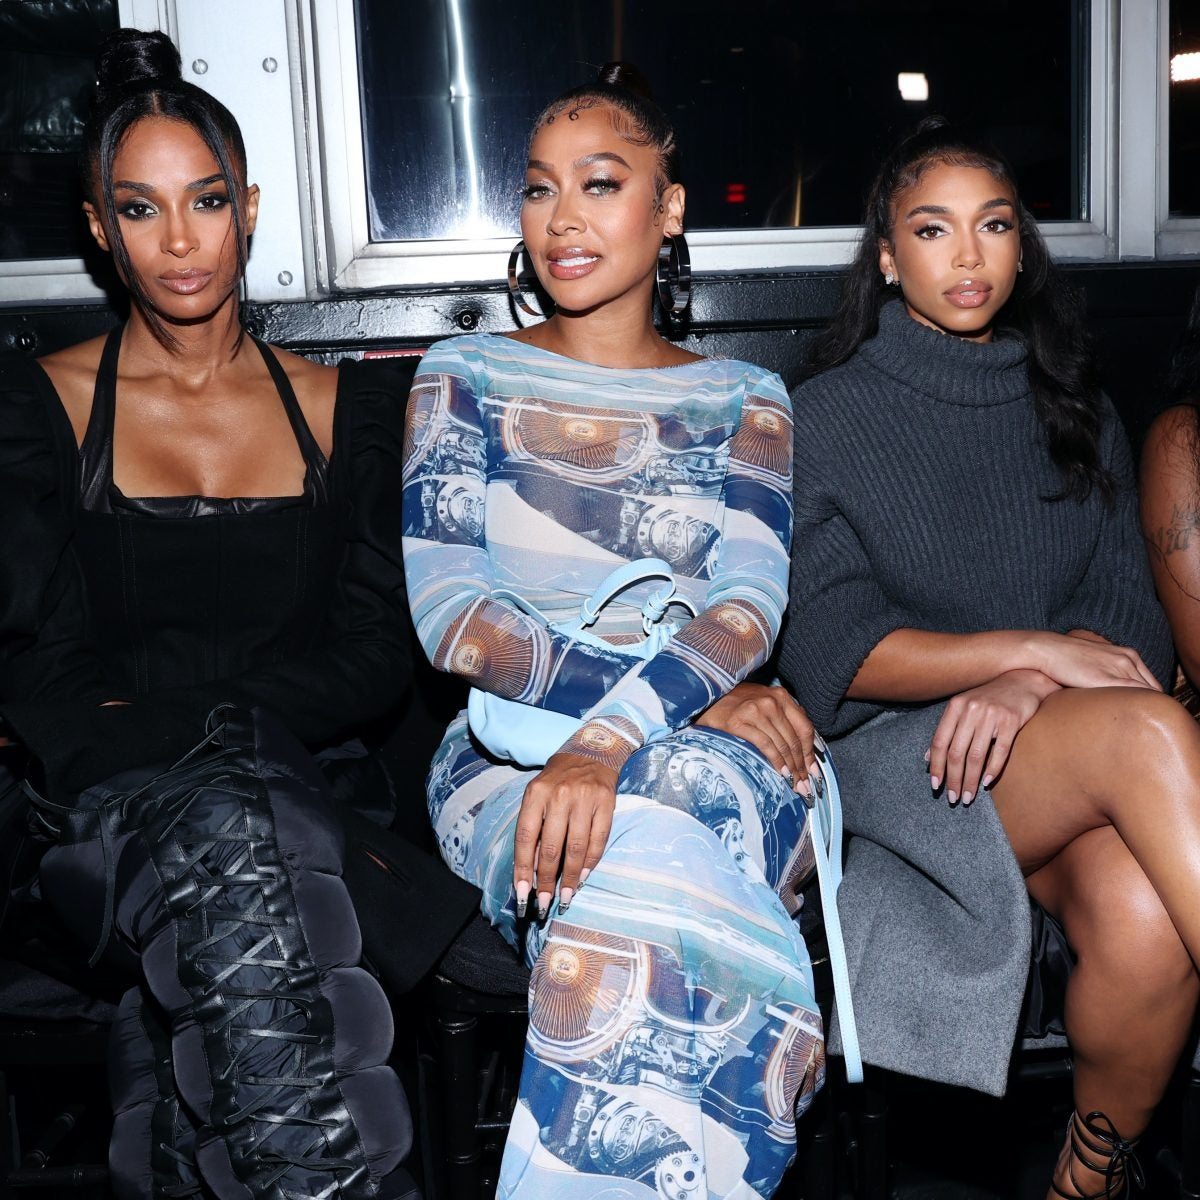 Star Gazing: Black Girls Sprinkled Magic From Venice To New York This Week